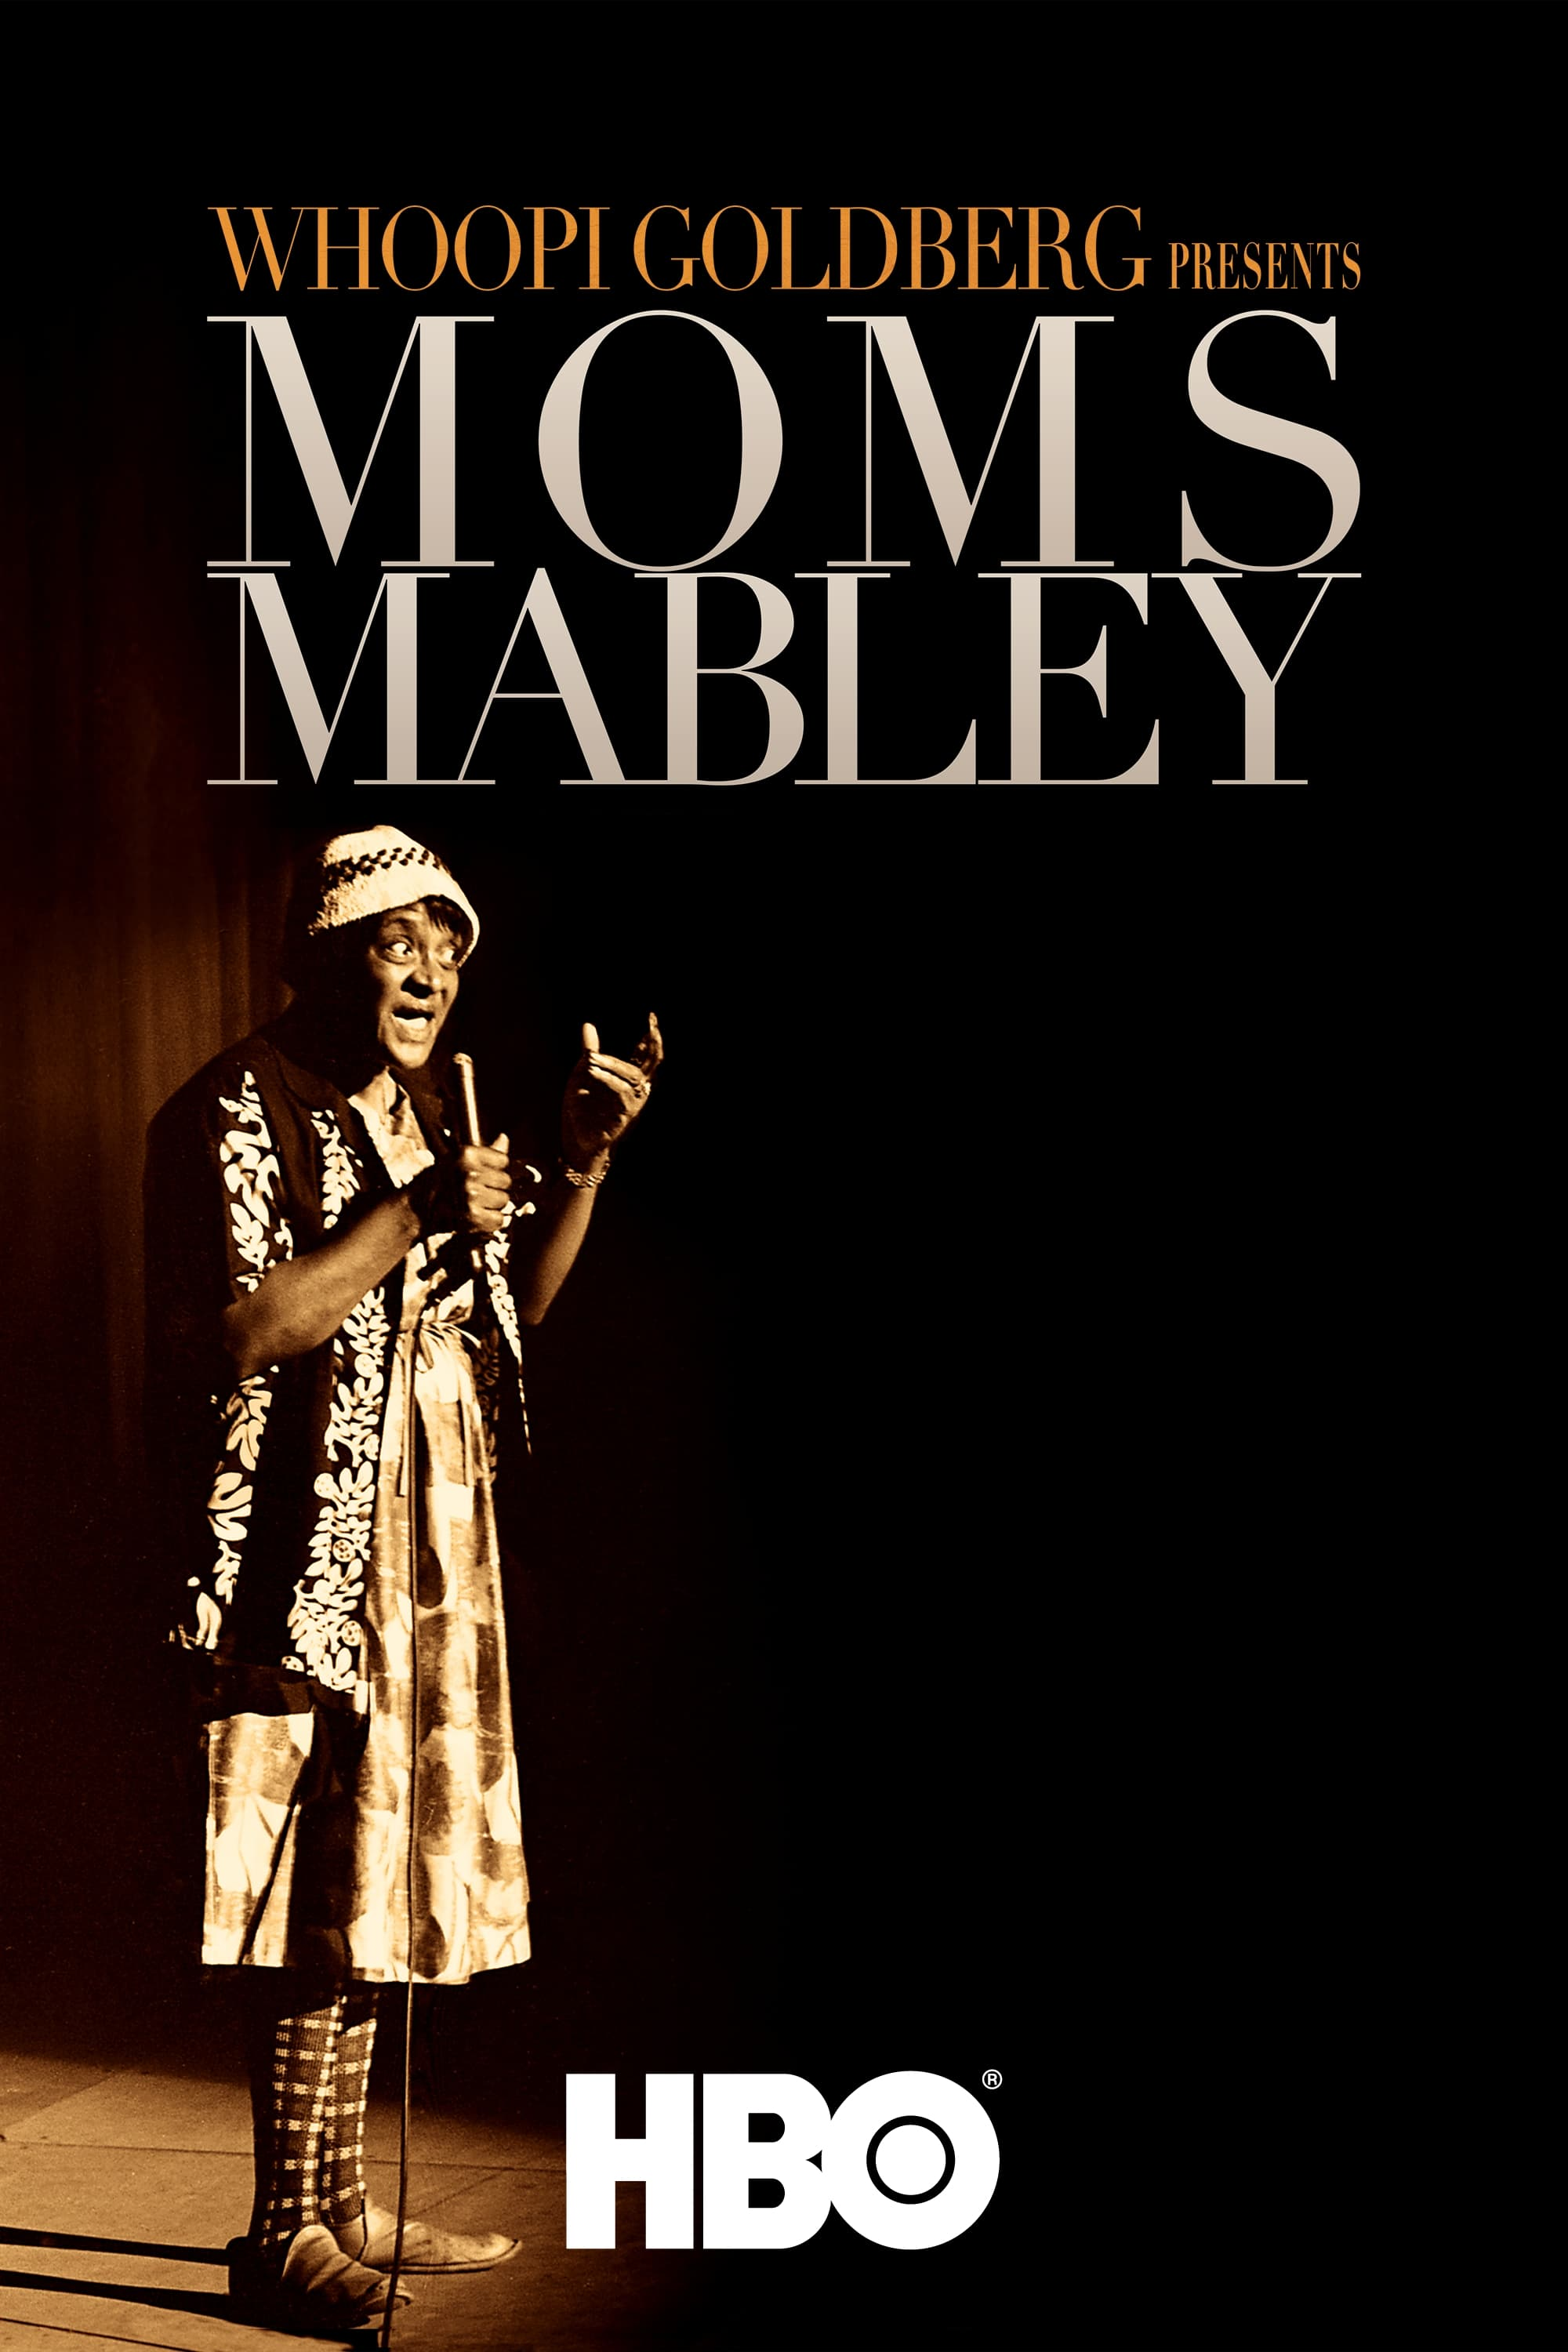 watch Whoopi Goldberg Presents Moms Mabley 2013 Stream online free